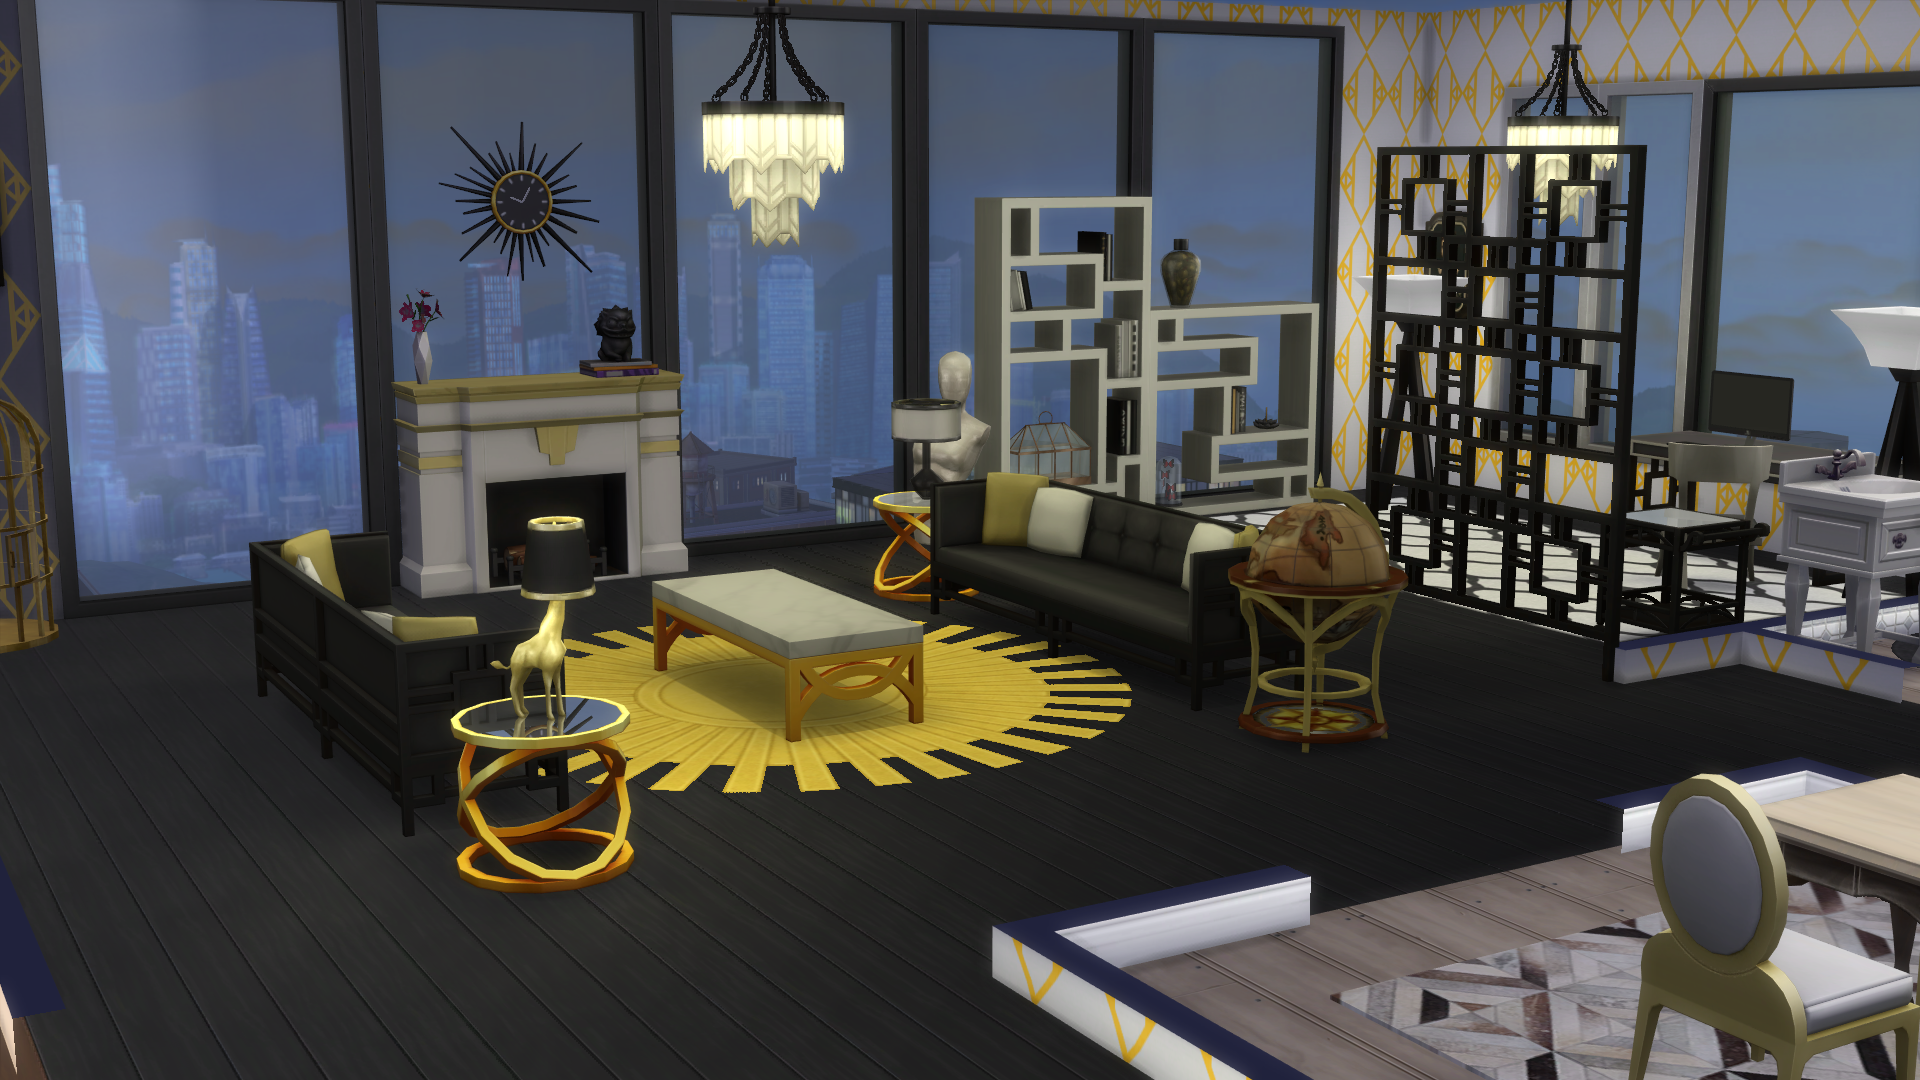 Living Office Room As Featured In My Sims 4 Vintage Glamour Stuff Pack Review Thesims4 Glamour Living Room Living Room Sims 4 Room Decor